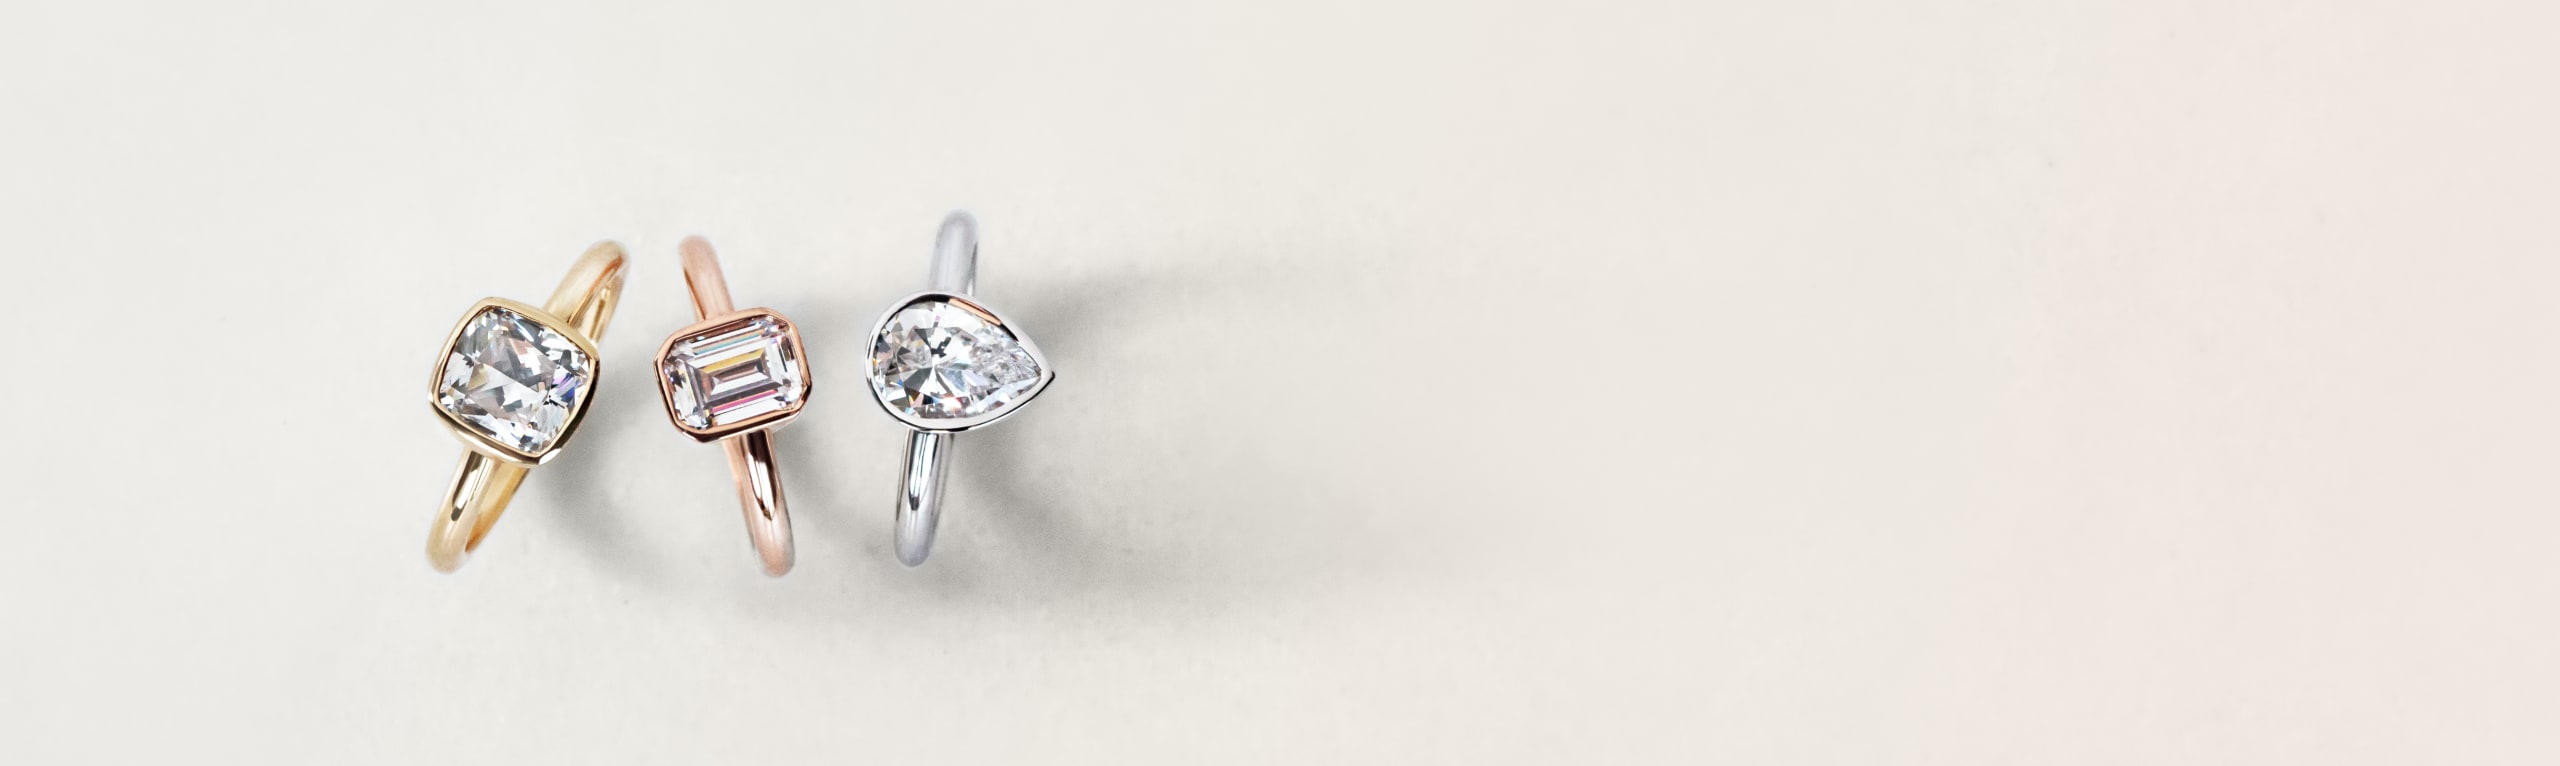 Marseille Engagement Rings